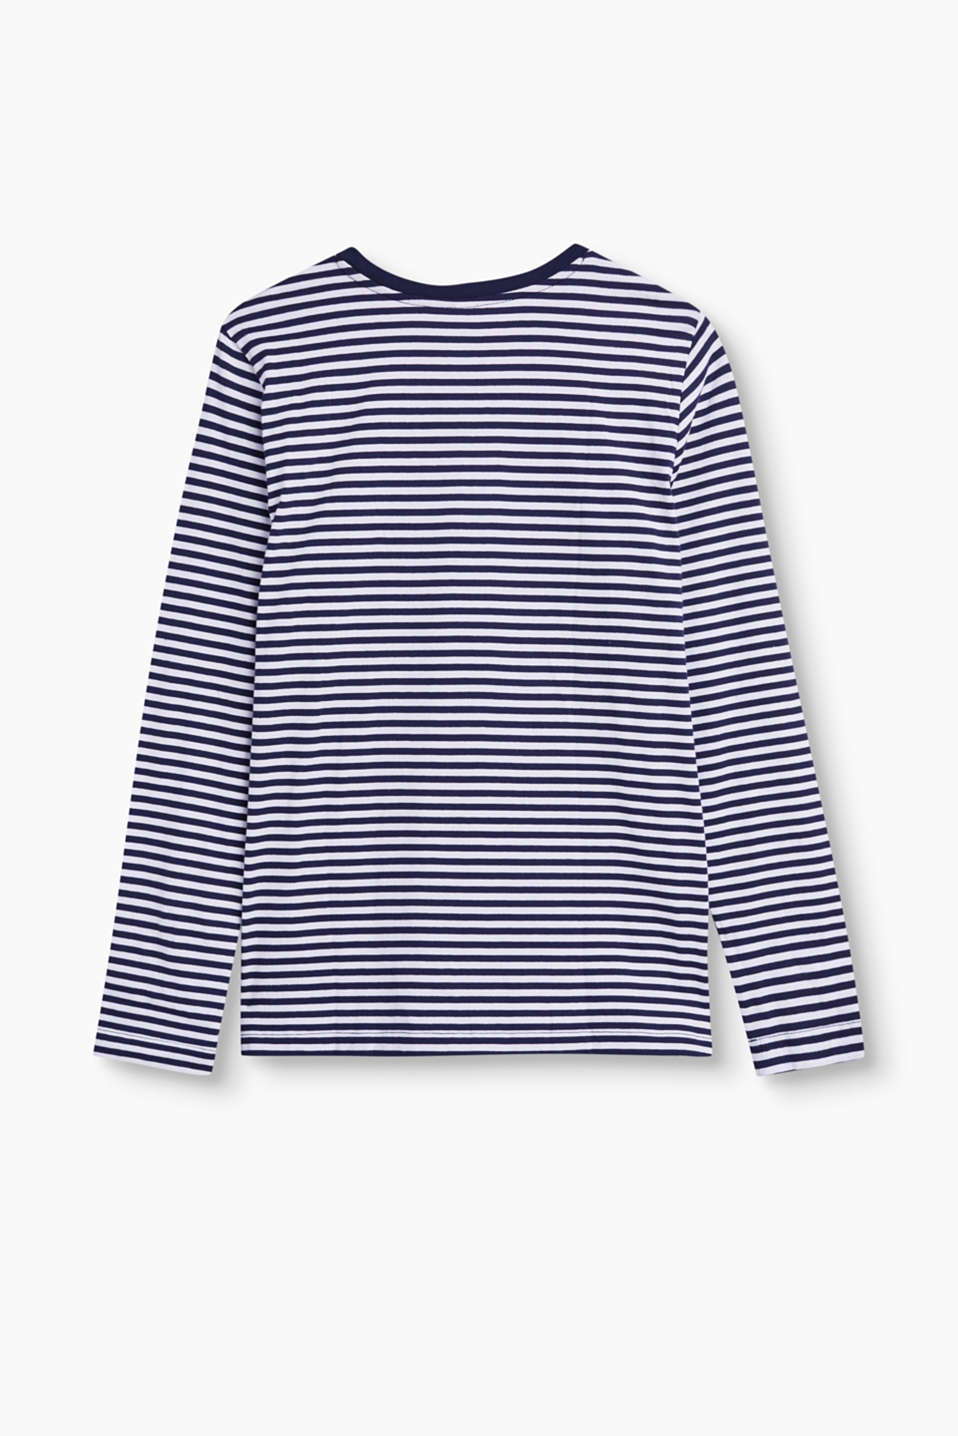 Striped long sleeve top in 100% cotton